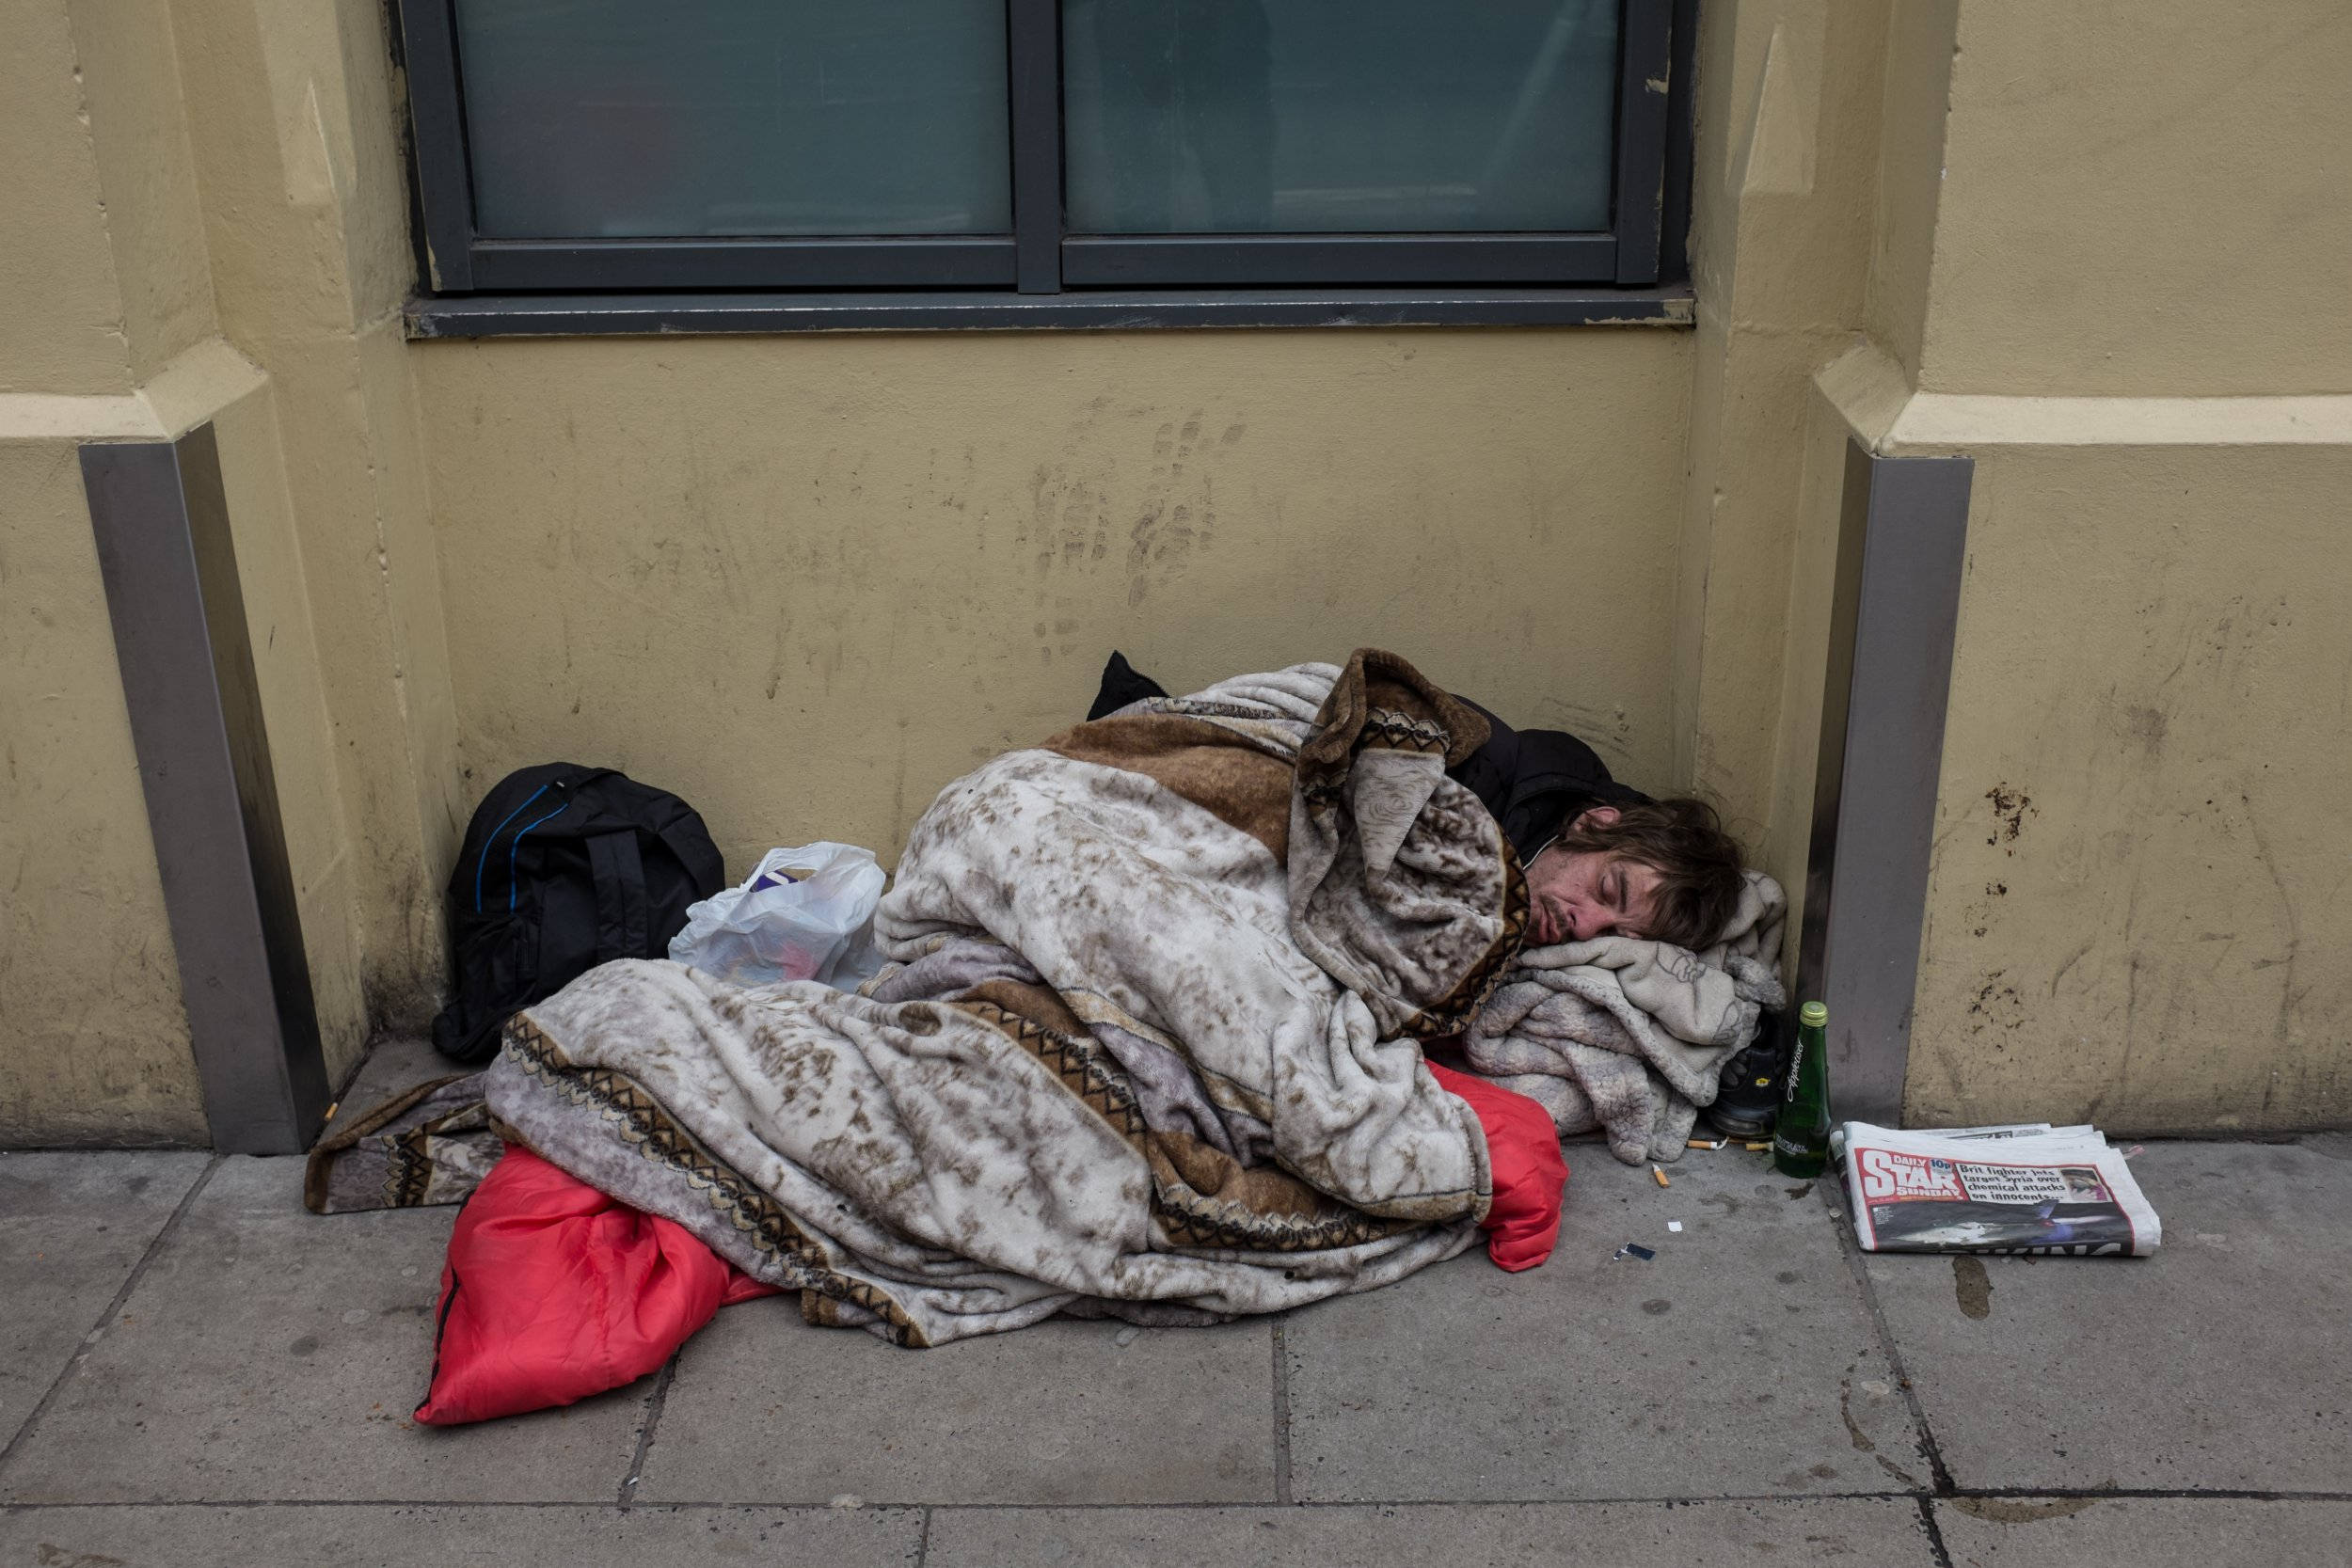 MANCHESTER, MANCHESTER,, UNITED KINGDOM - 2018/04/15: A homeless man sleeps in a pedestrian pathway in Manchester city center. Greater Manchester is a remarkable city in the northwest of England with a lush industrial heritage. The Castle field conservation areas 18th-century canal system recalls the citys days as a textile powerhouse, and visitors can trace this history at the interactive Museum of Science & Industry. (Photo by Rahman Hassani/SOPA Images/LightRocket via Getty Images)